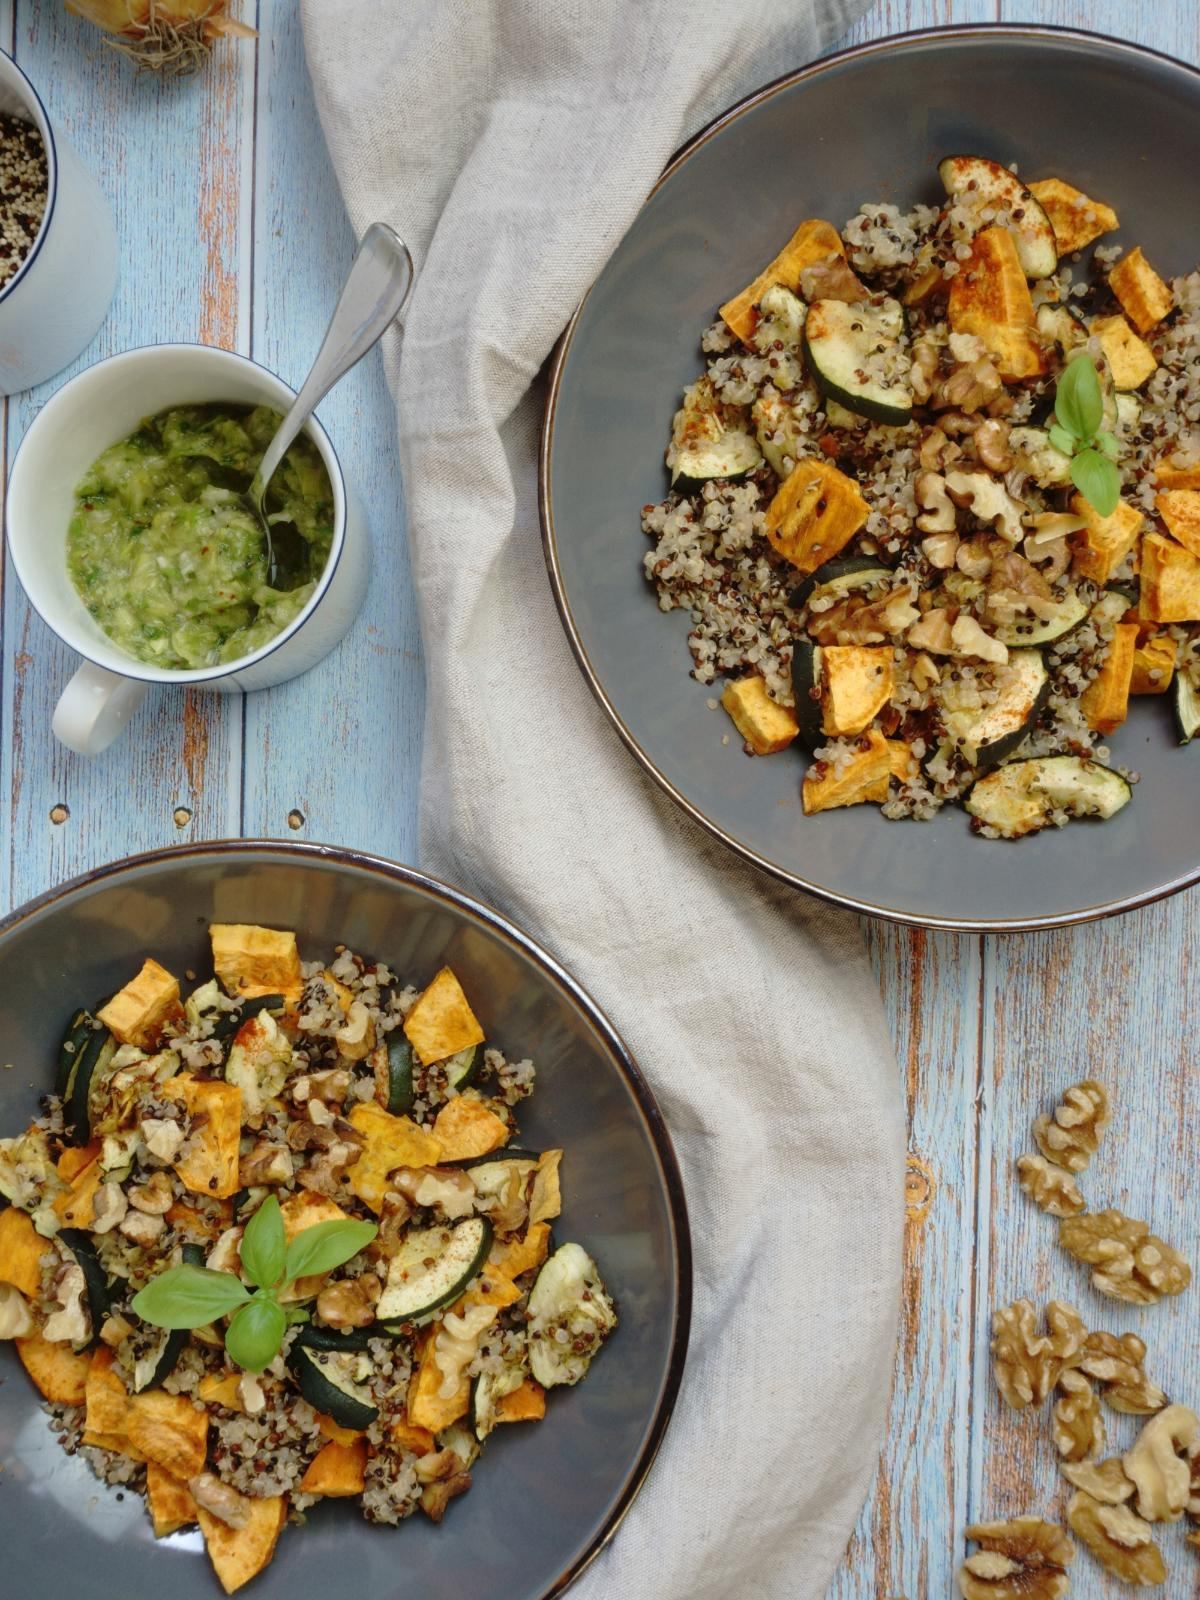 Quinoa Salad With Baked Sweet Potatoes and Zucchini Aerial Perspective